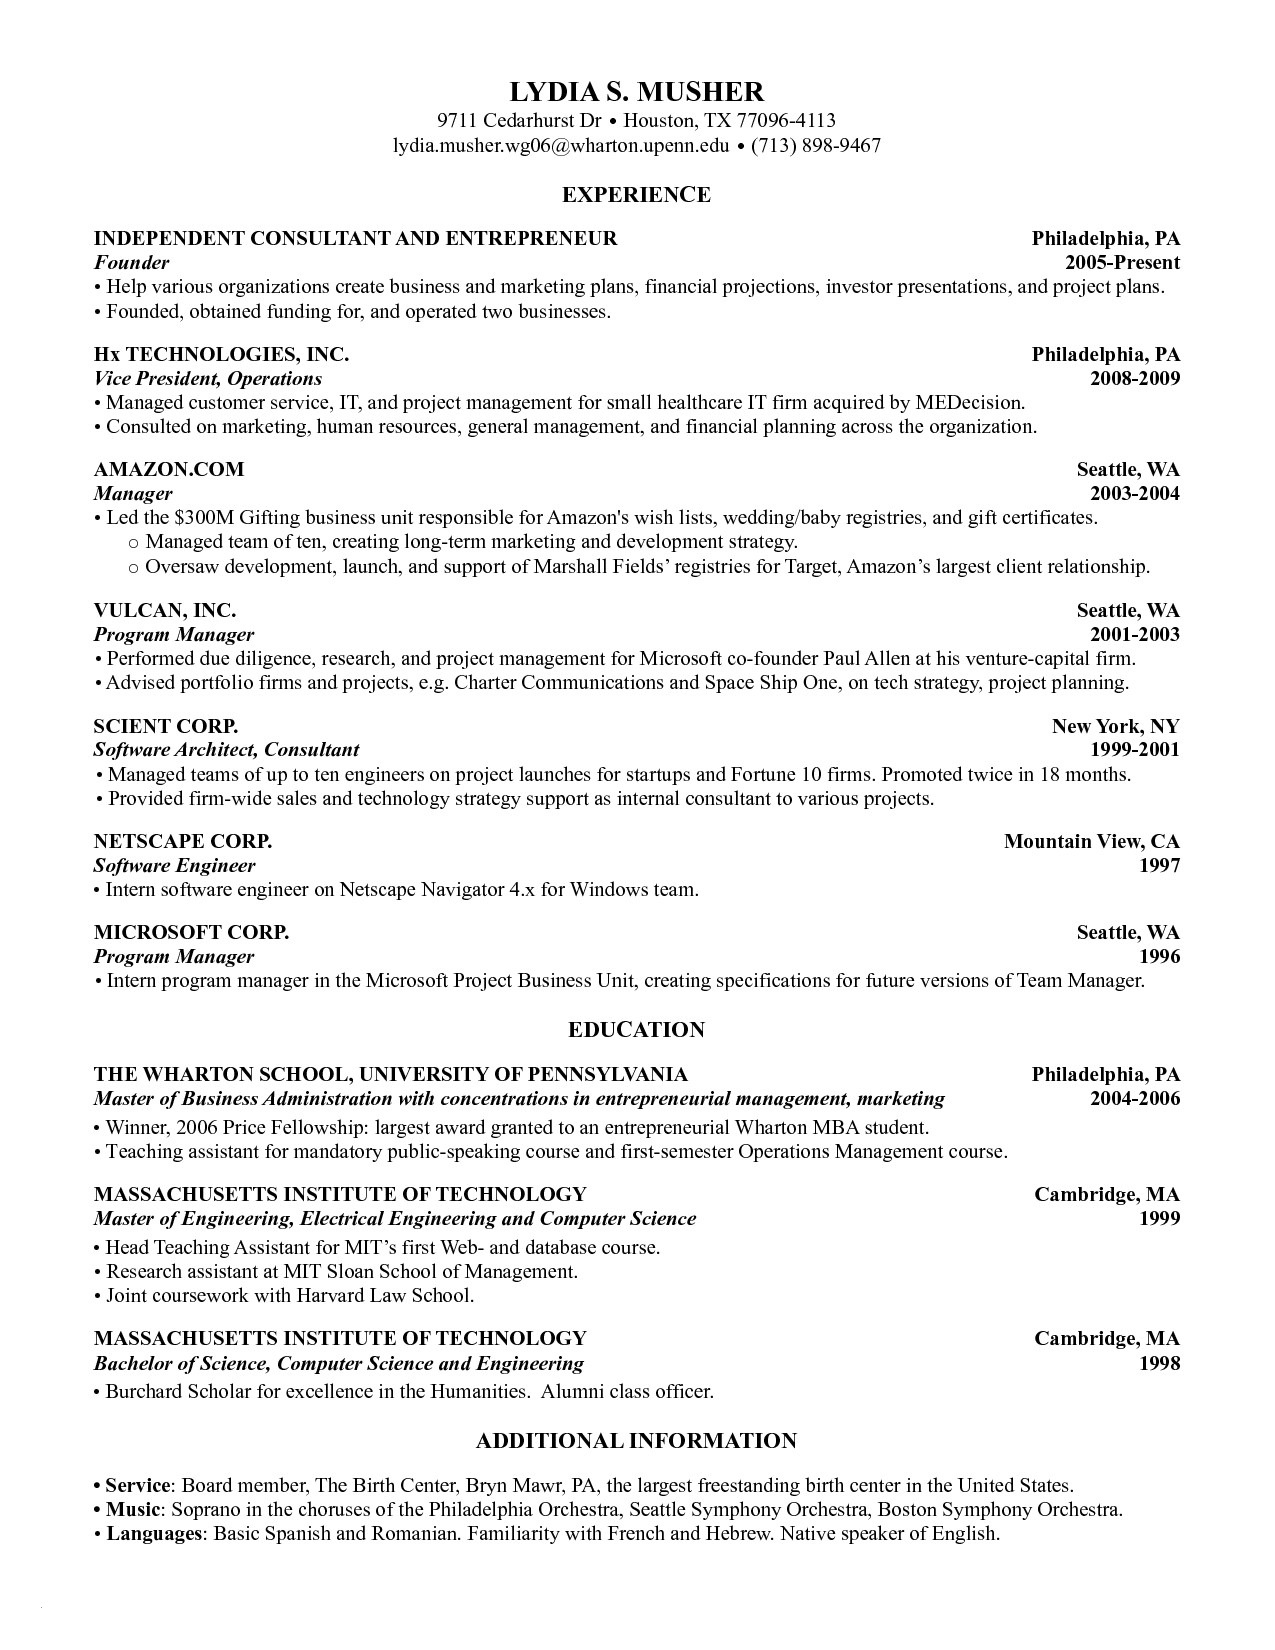 wharton mba resume template example-Amazon Resume Sample Inspirational Mba Resume Template Reference Harvard Cover Letters Roho 4senses 17-t